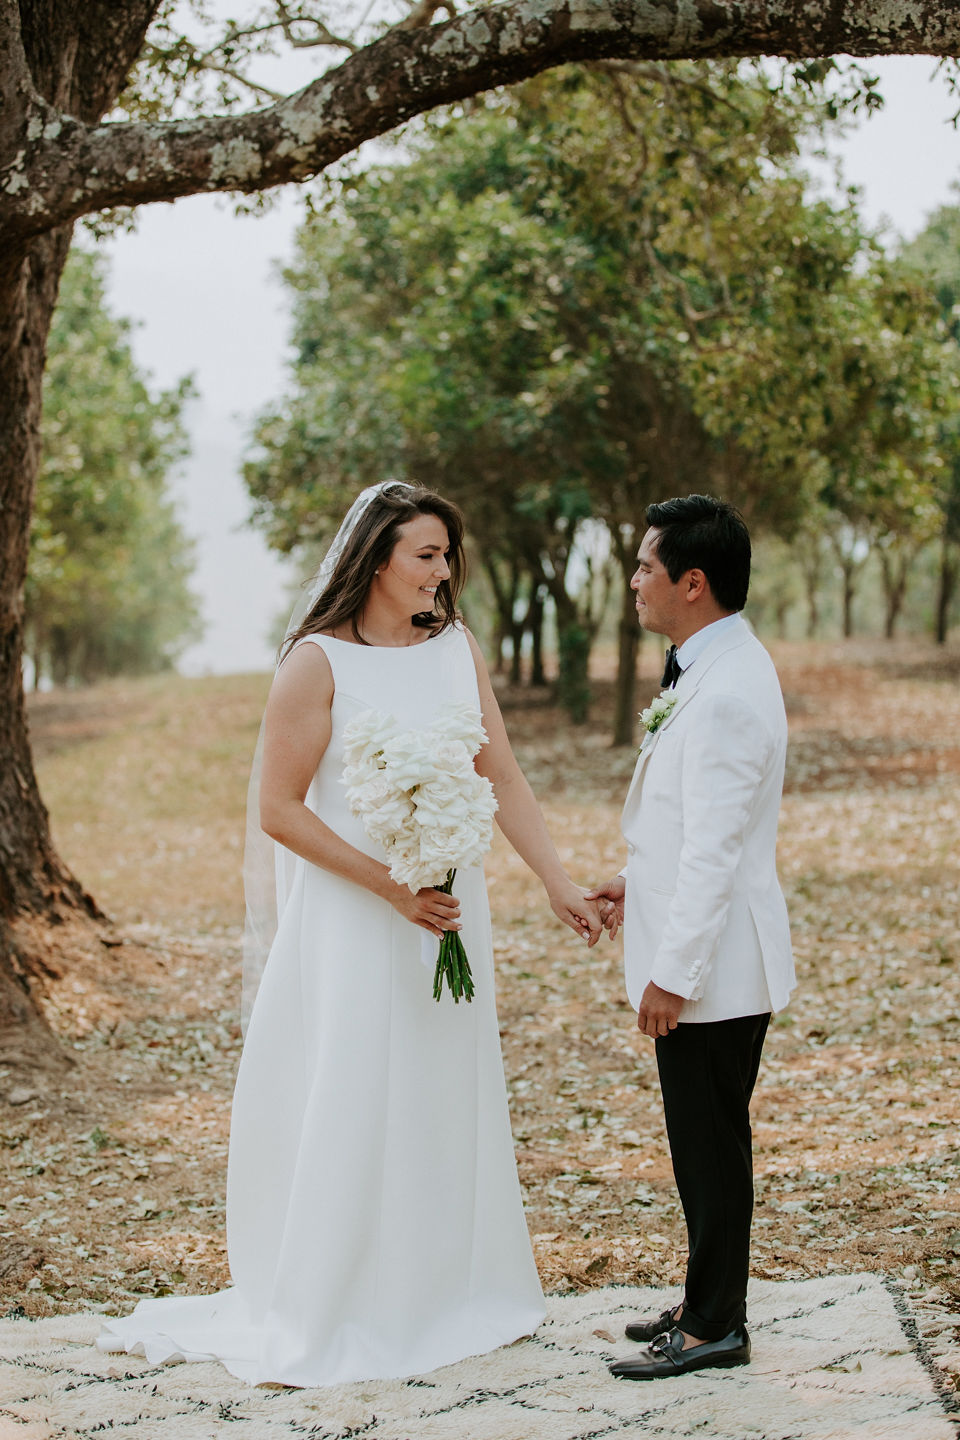 Claudia + Paulie's Modern Luxe Wedding at The Orchard Estate, Byron Bay | The Events Lounge Wedding Planning